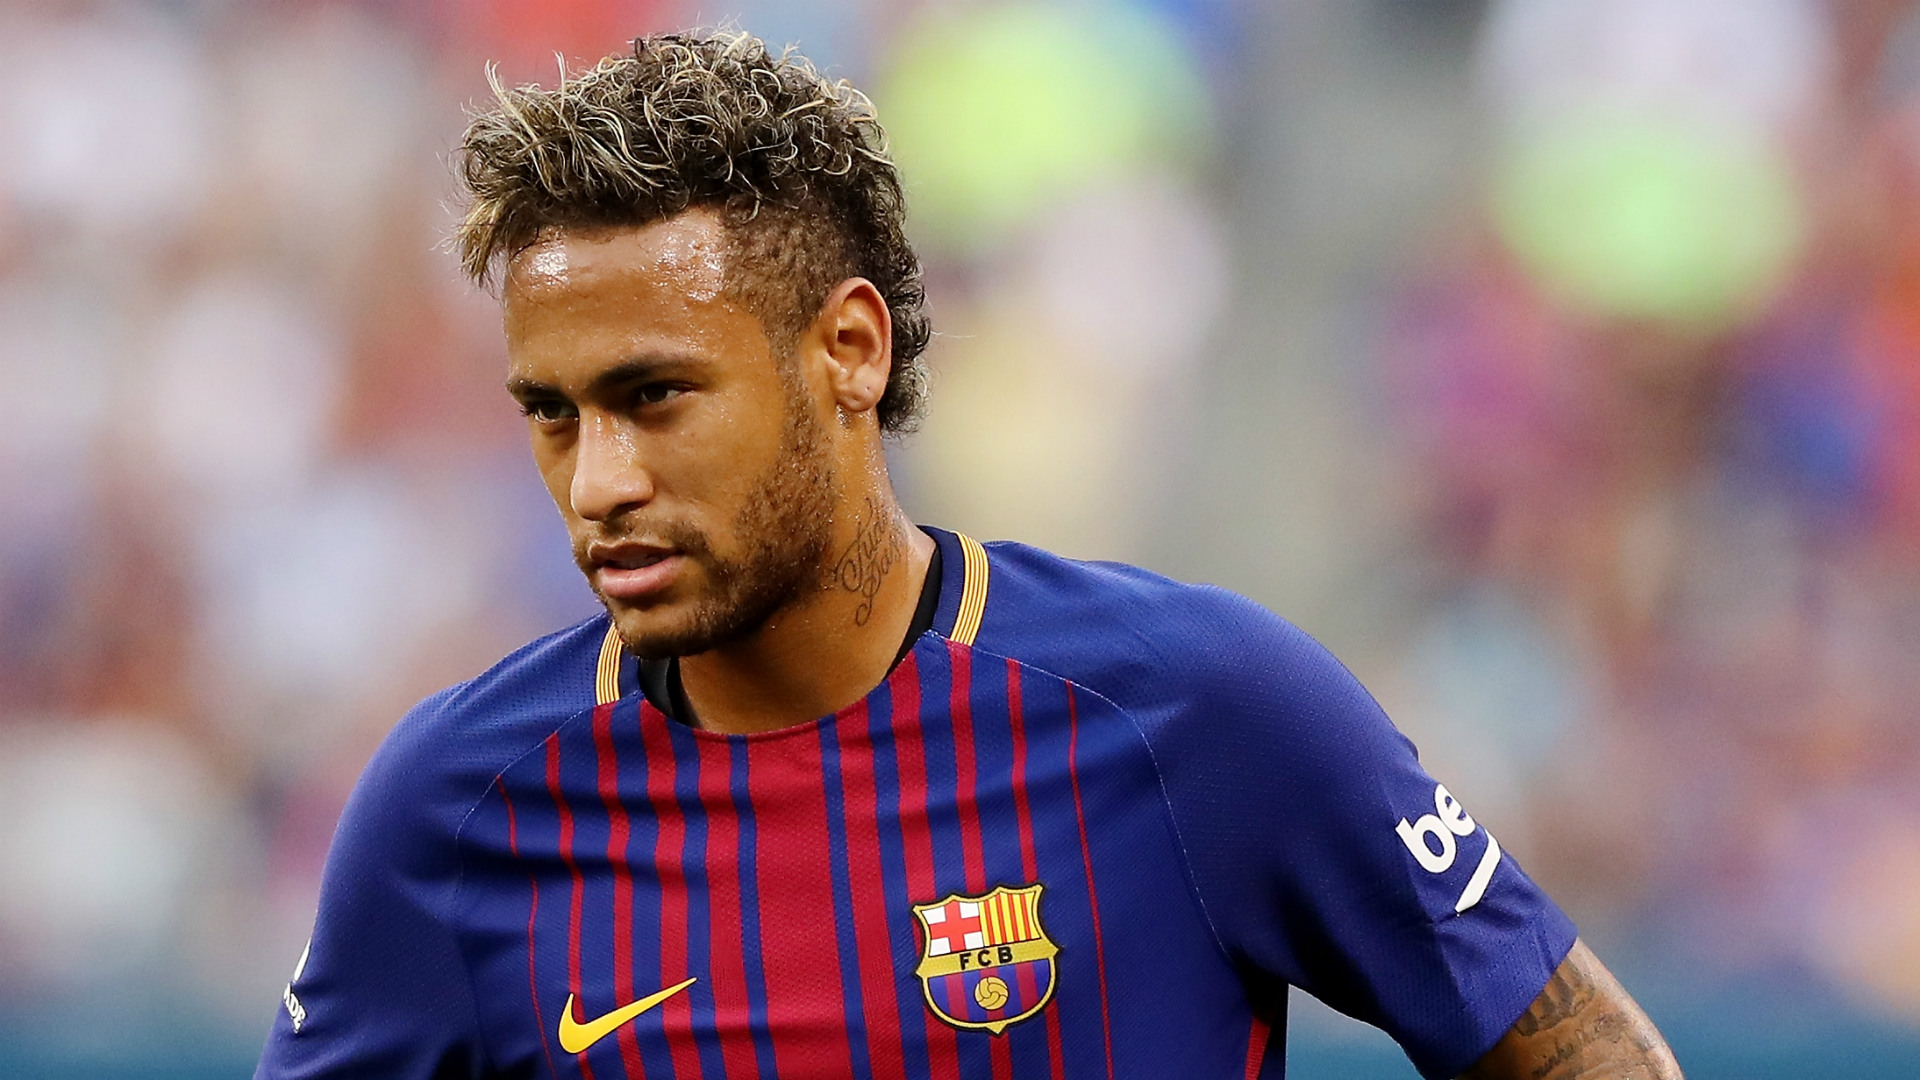 Neymar says goodbye to Barcelona, Ronaldo hits out at critics — Trending